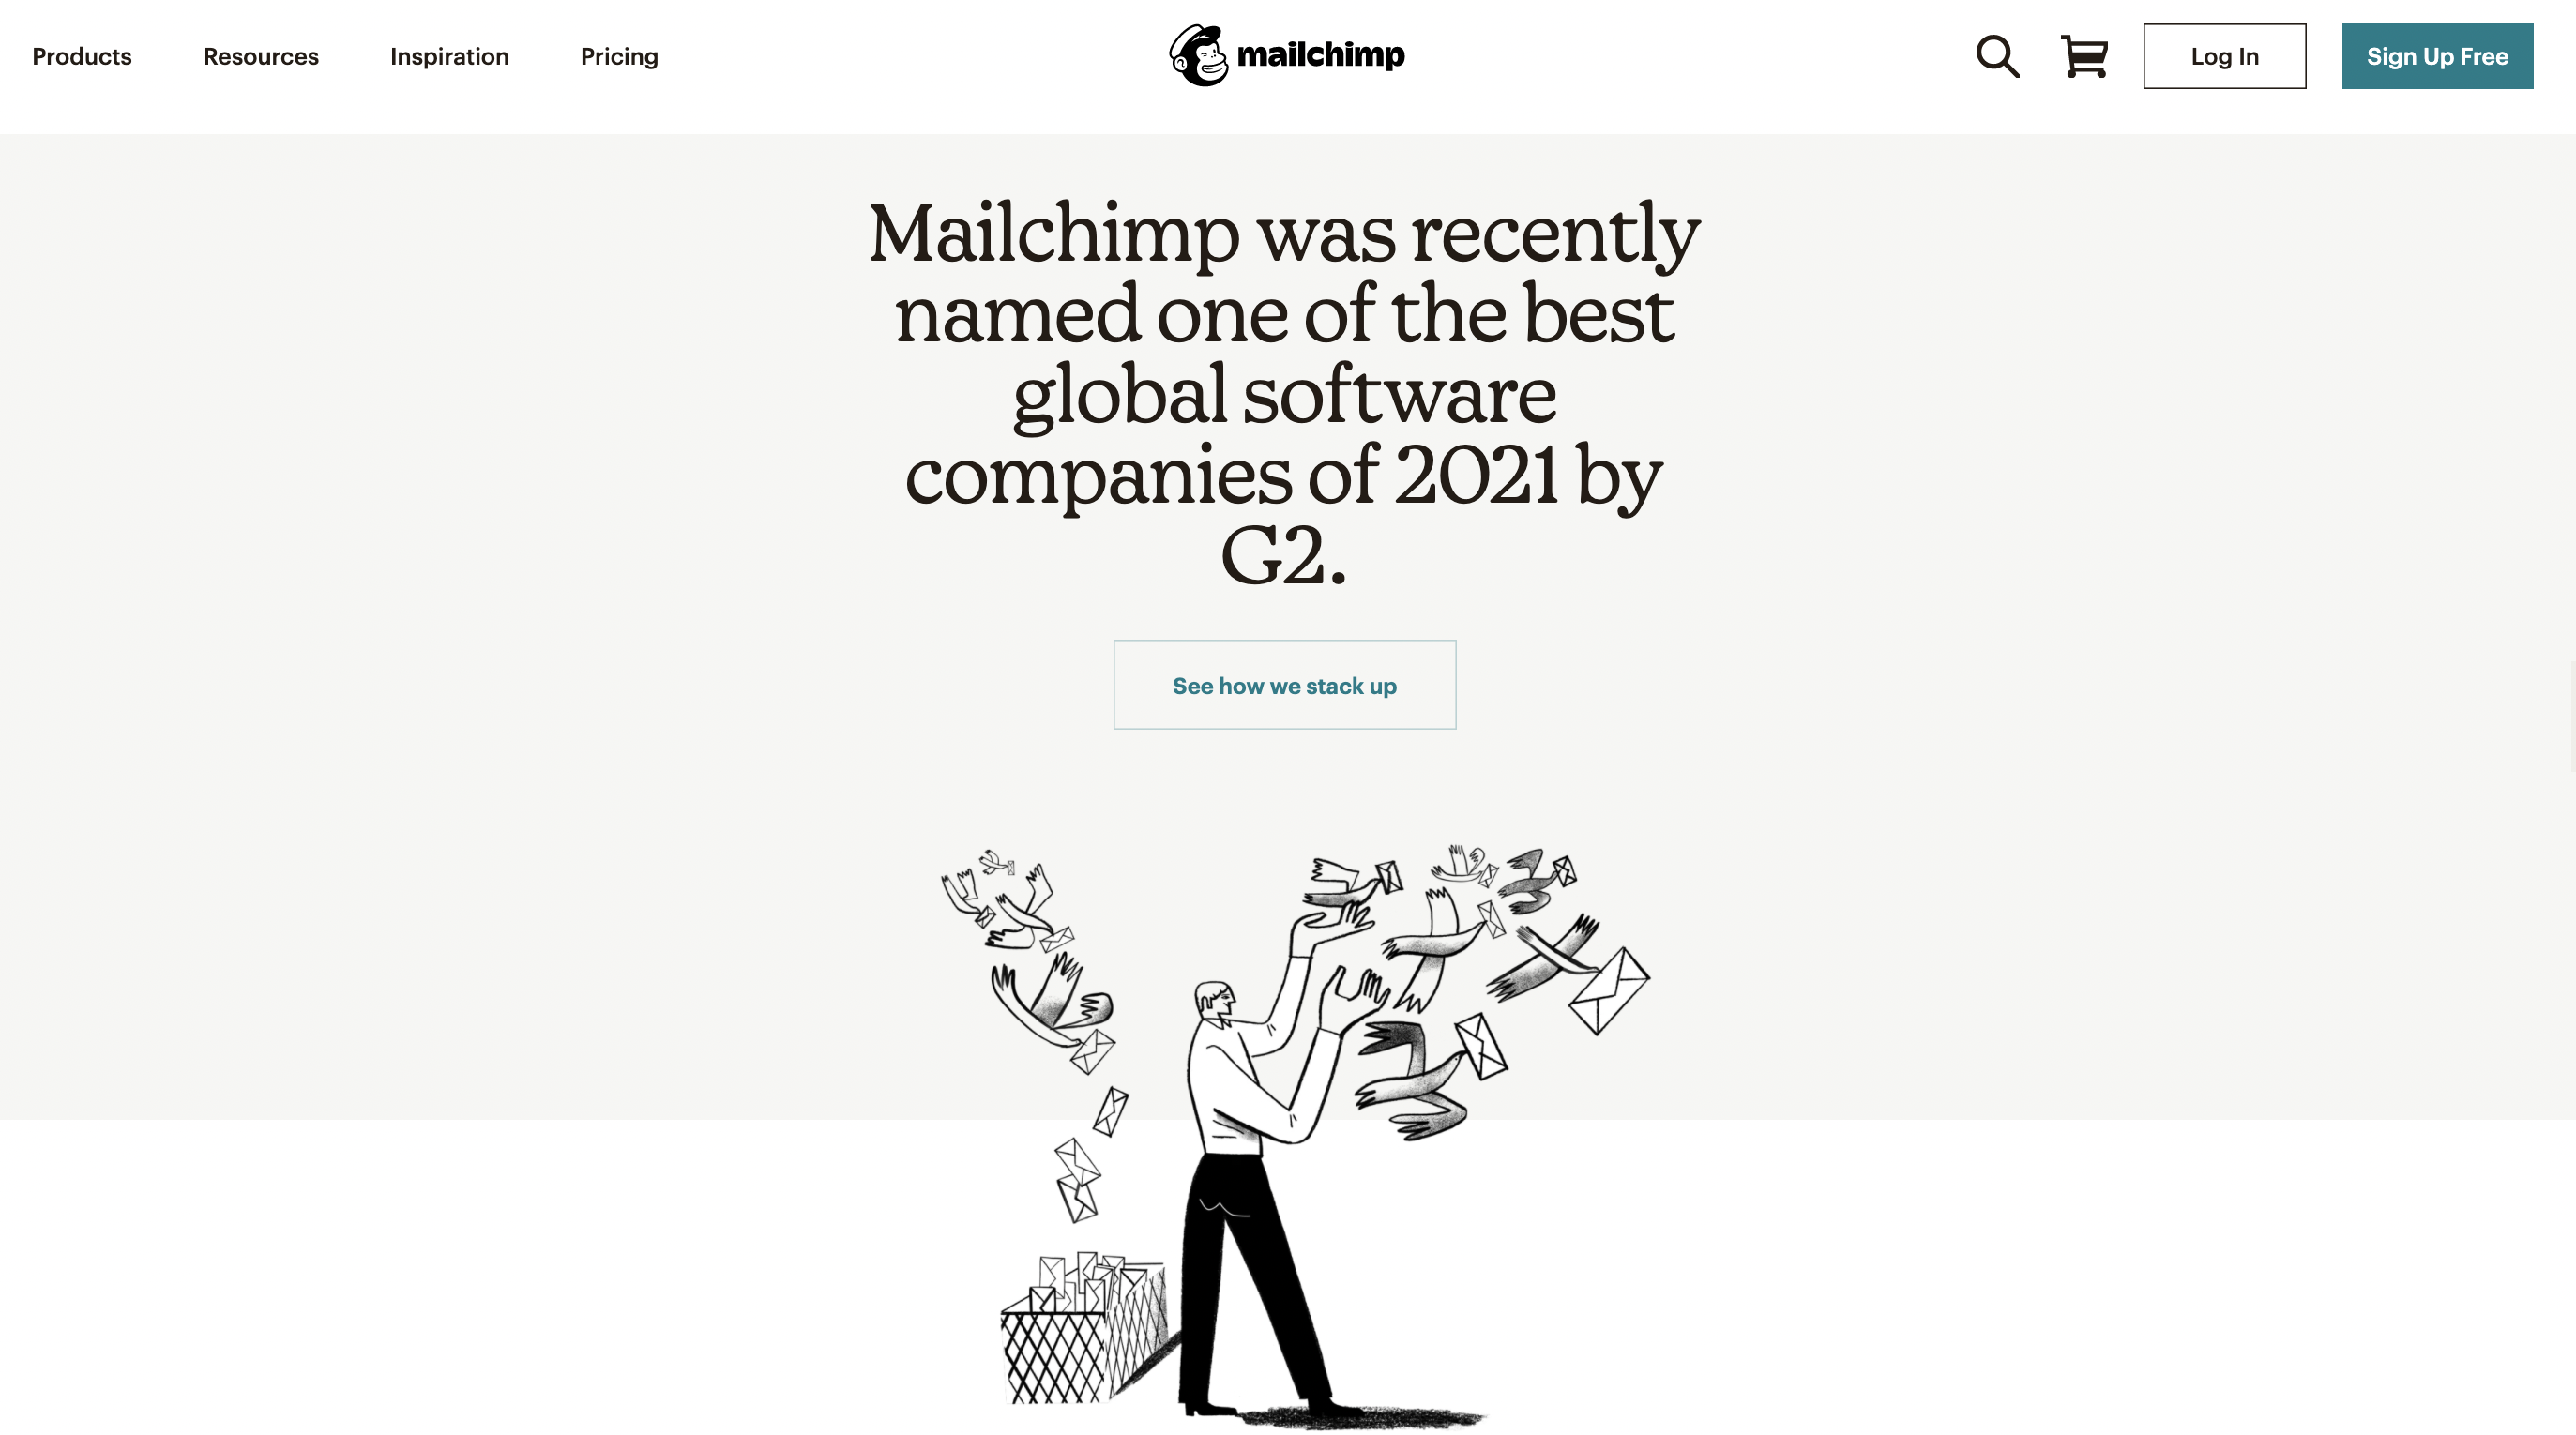 social proof example Mailchimp